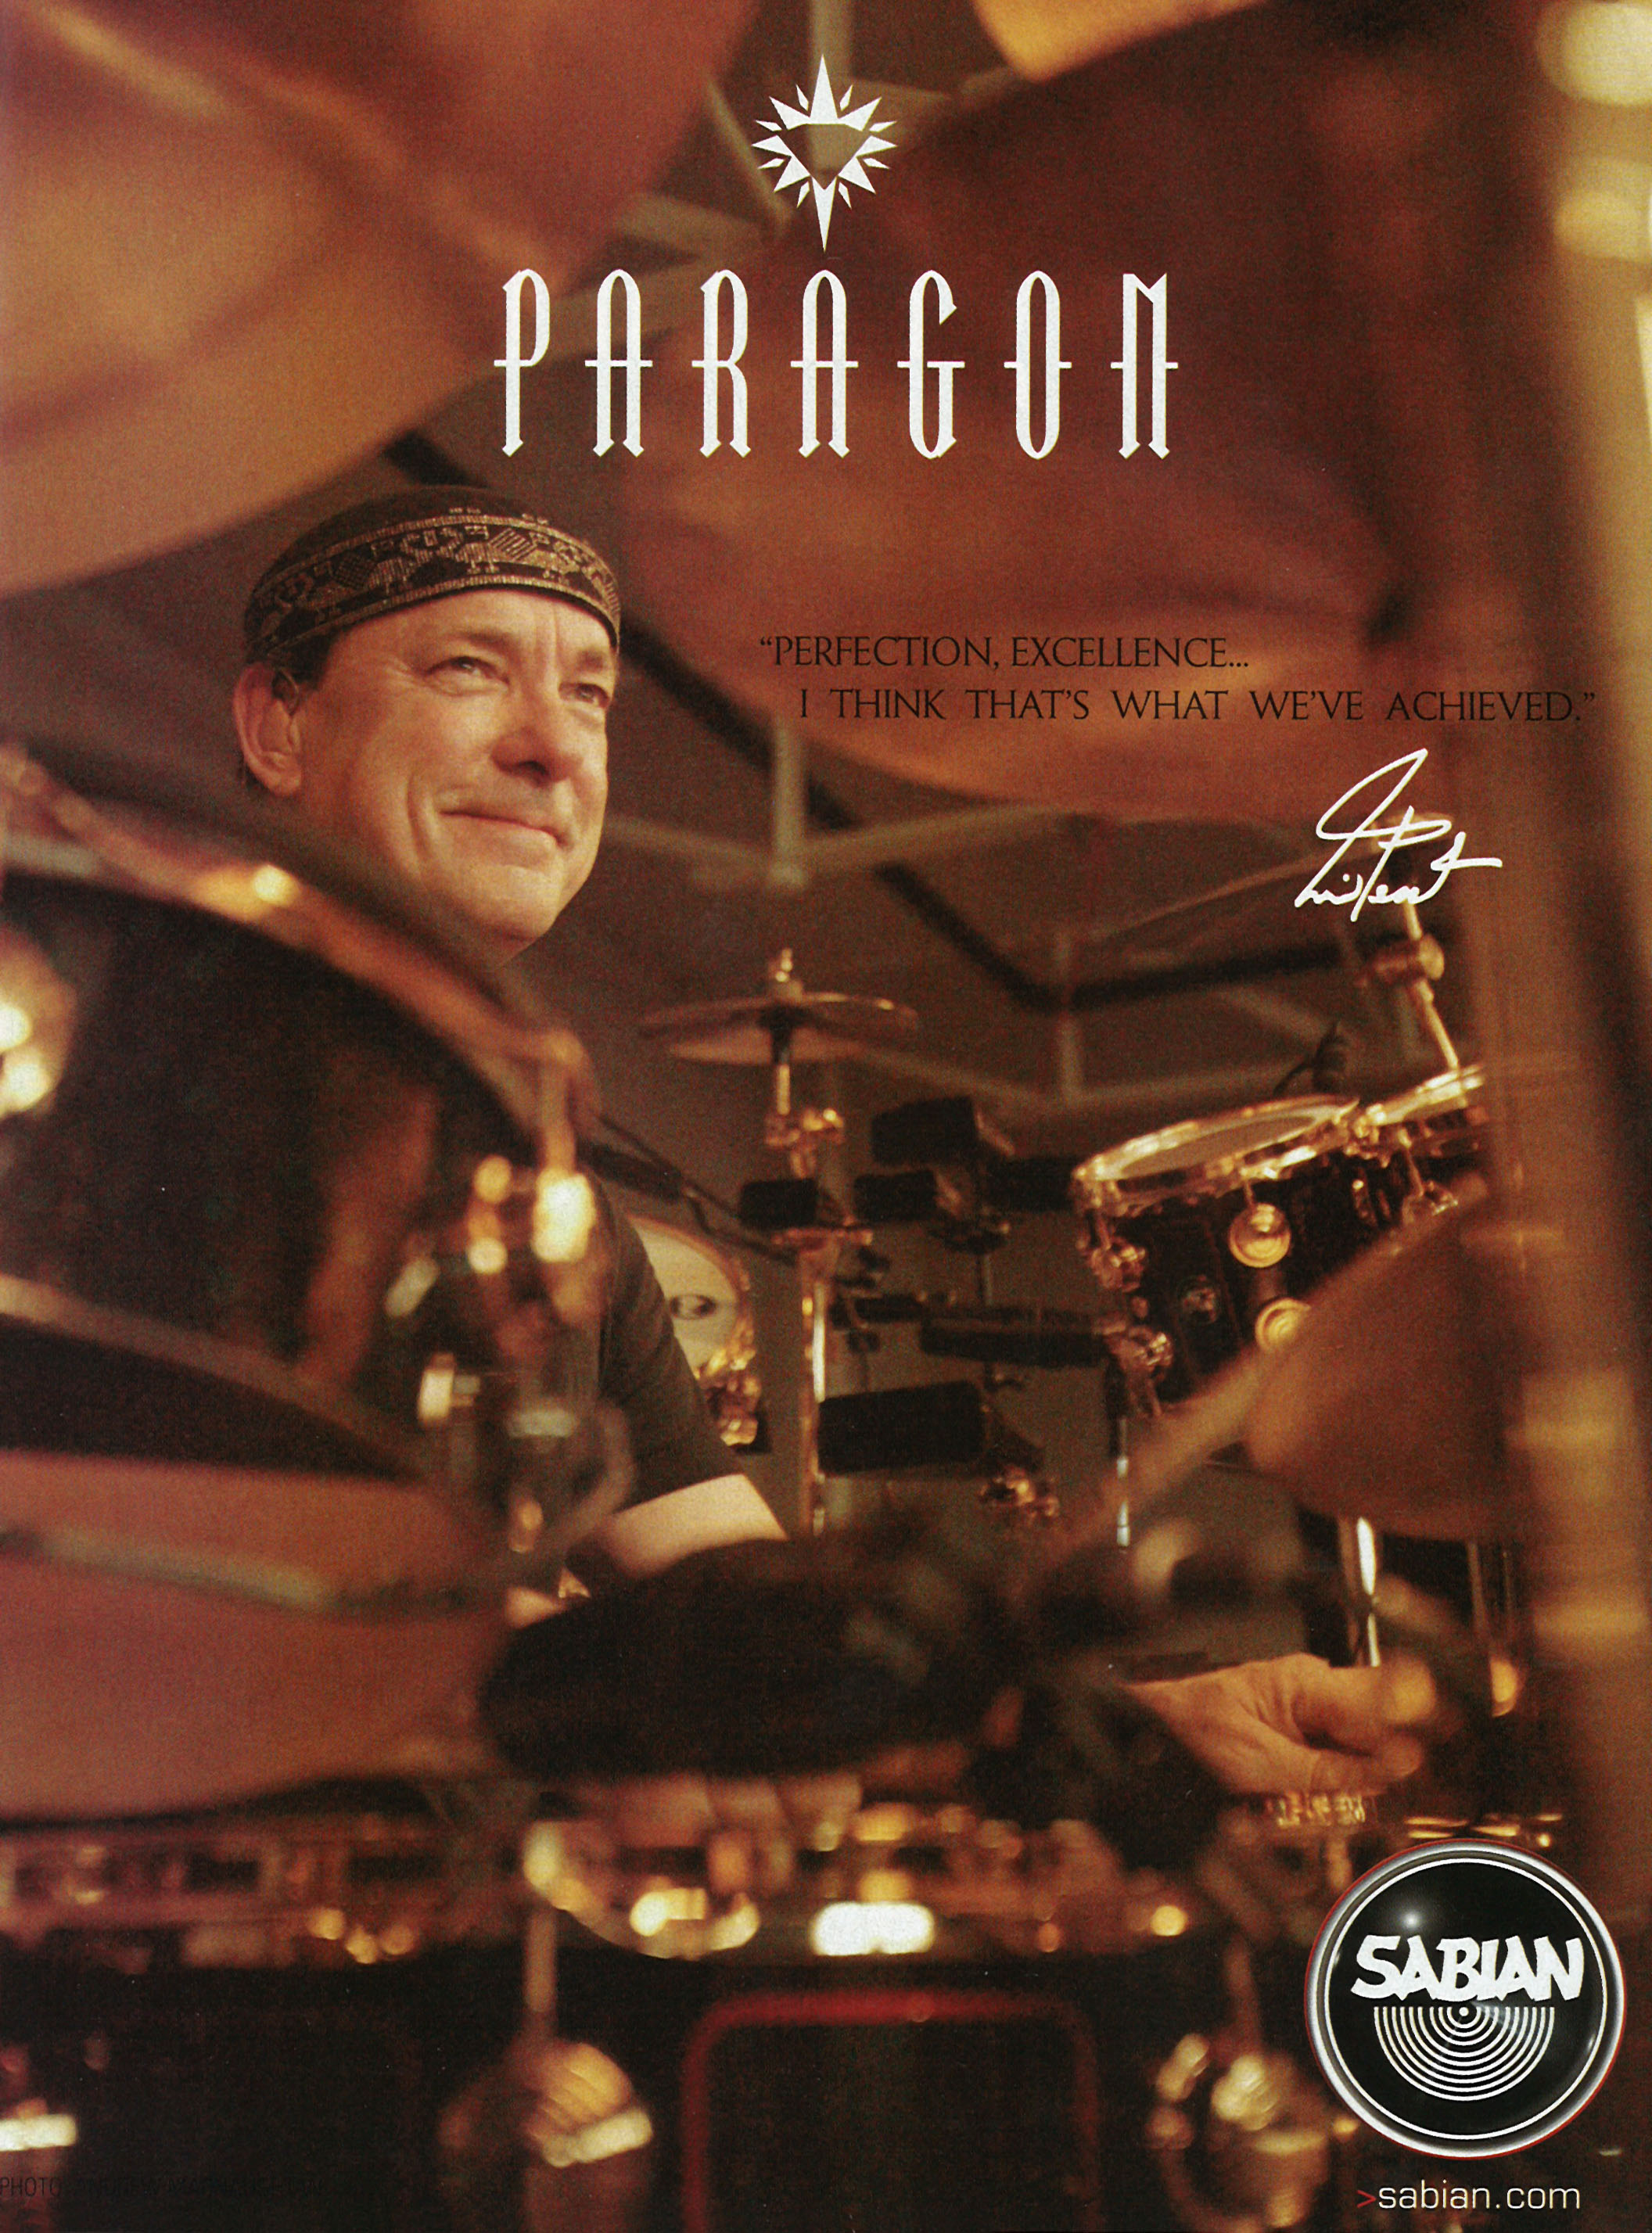 Soloing In The Shadows Of Giants - Modern Drummer Magazine - April 2006